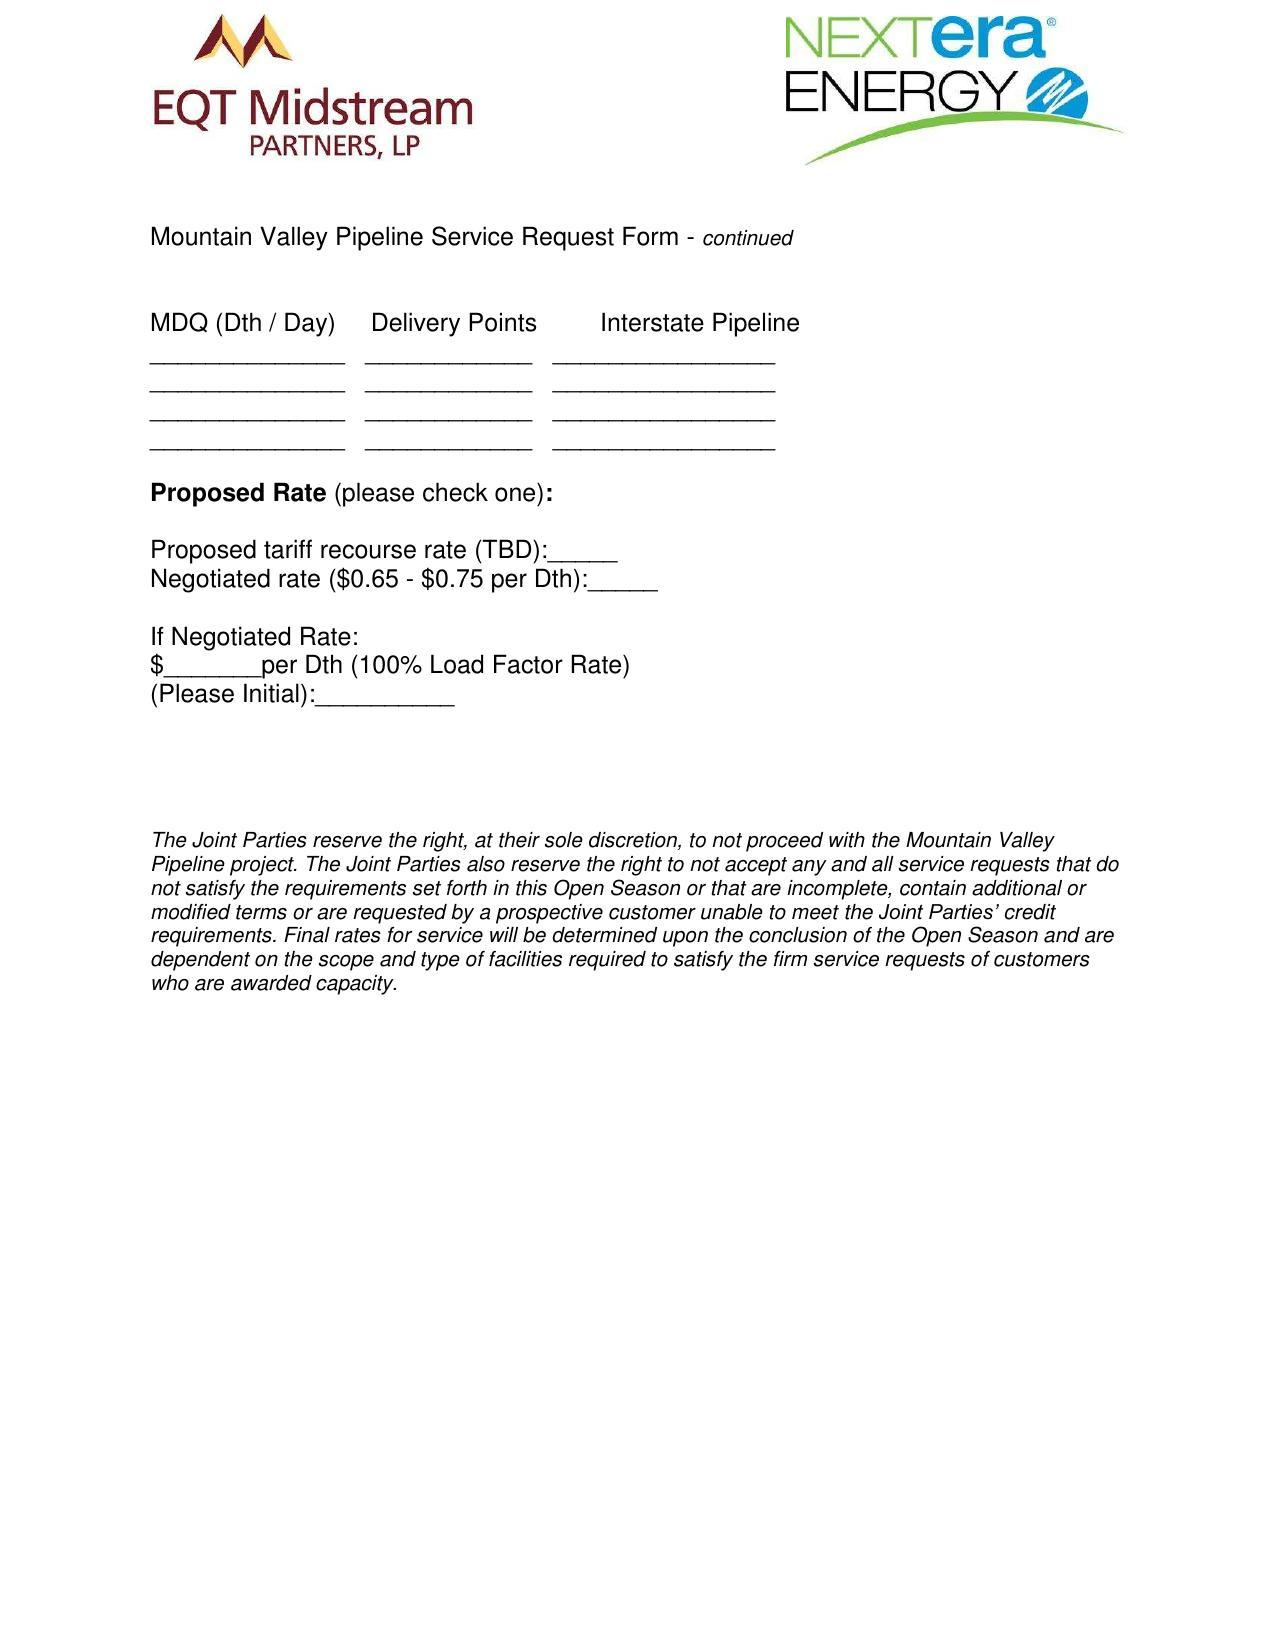 1275x1650 MVP Service Request Form (2 of 2), in Mountain Valley Pipeline Non-binding Open Season, by EQT Midstream Partners, LLP and NextEra Energy, for SpectraBusters.org, 12 June 2014